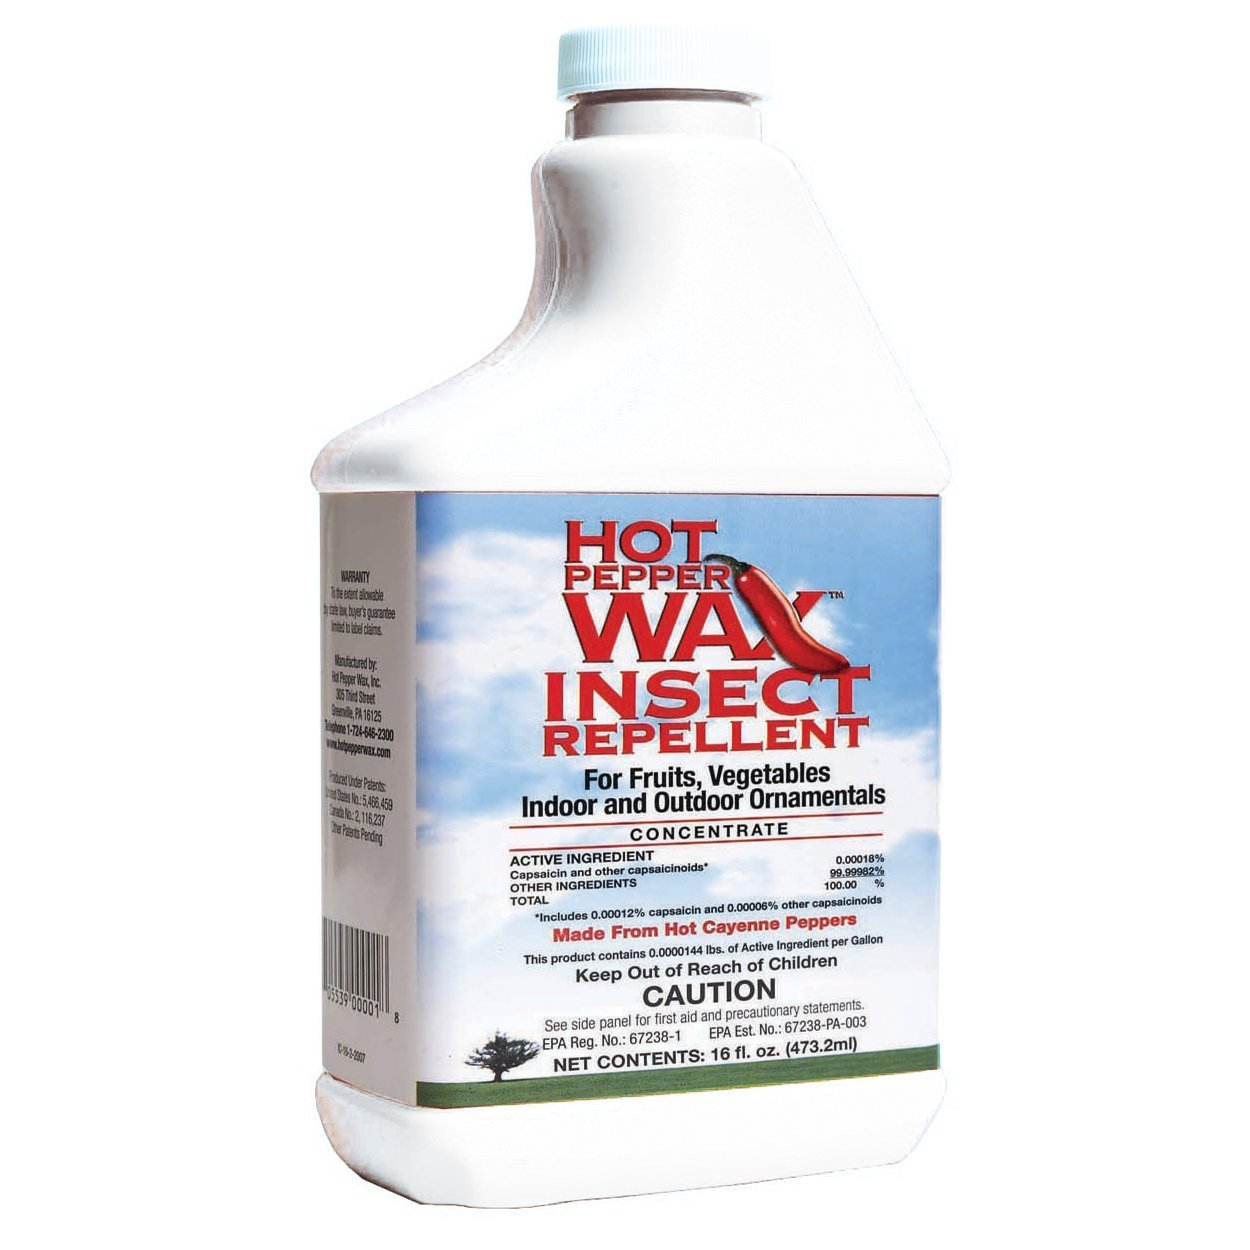 Harvest Hot Pepper Wax Insect Repellent for Gardening Fruit, Vegetable Plants (6) by Hot Pepper Wax